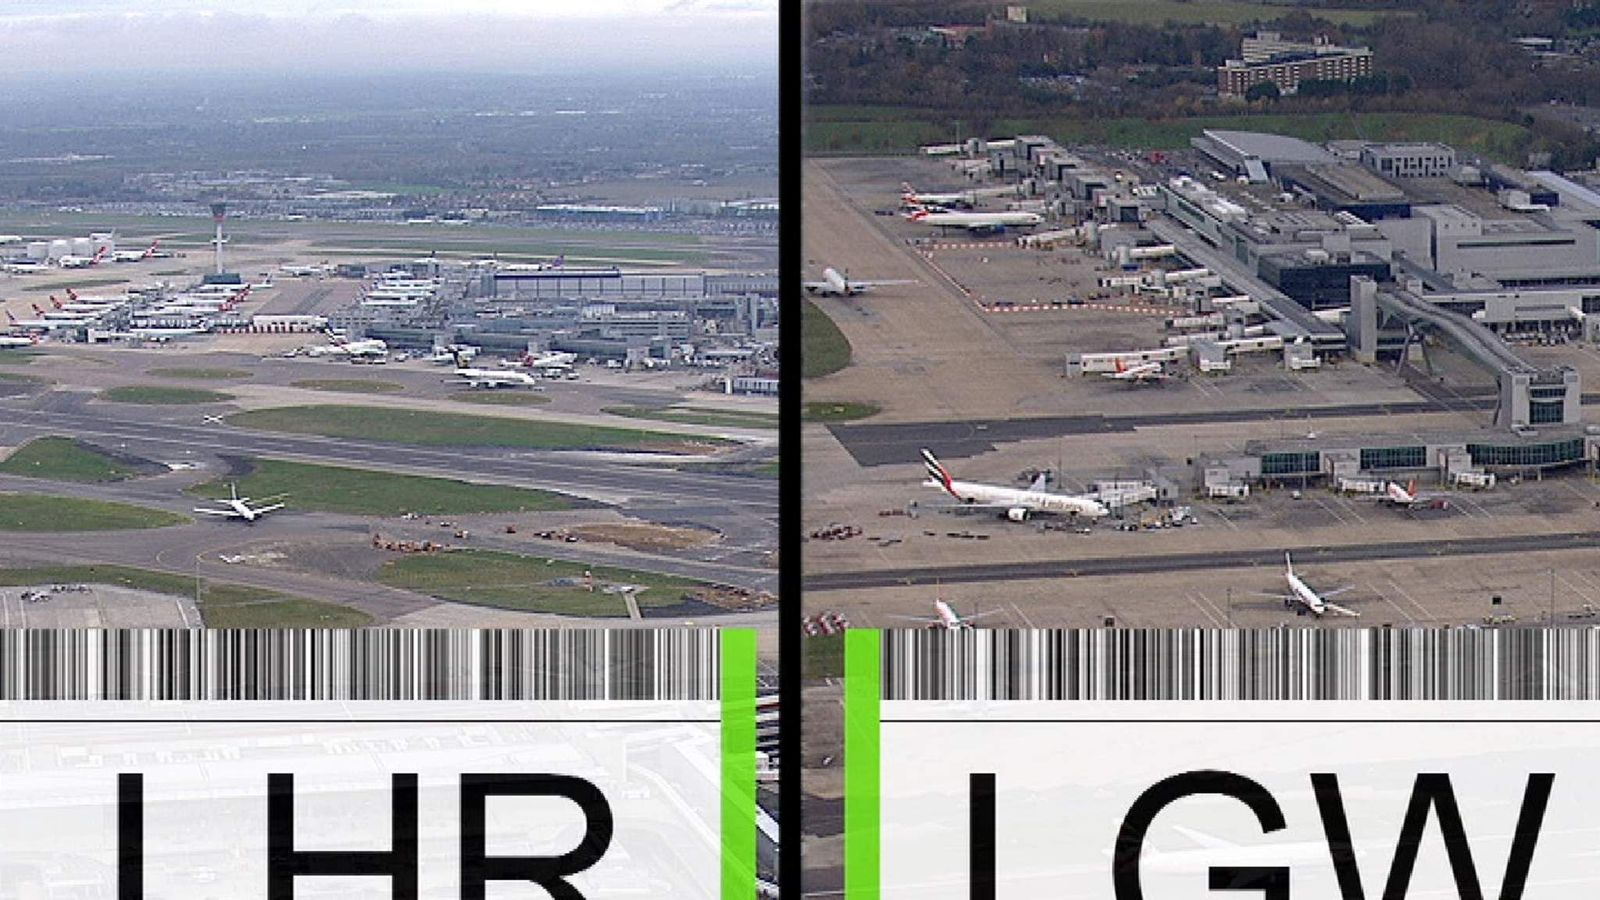 Gatwick and Heathrow are competing to see which will be allowed to expand